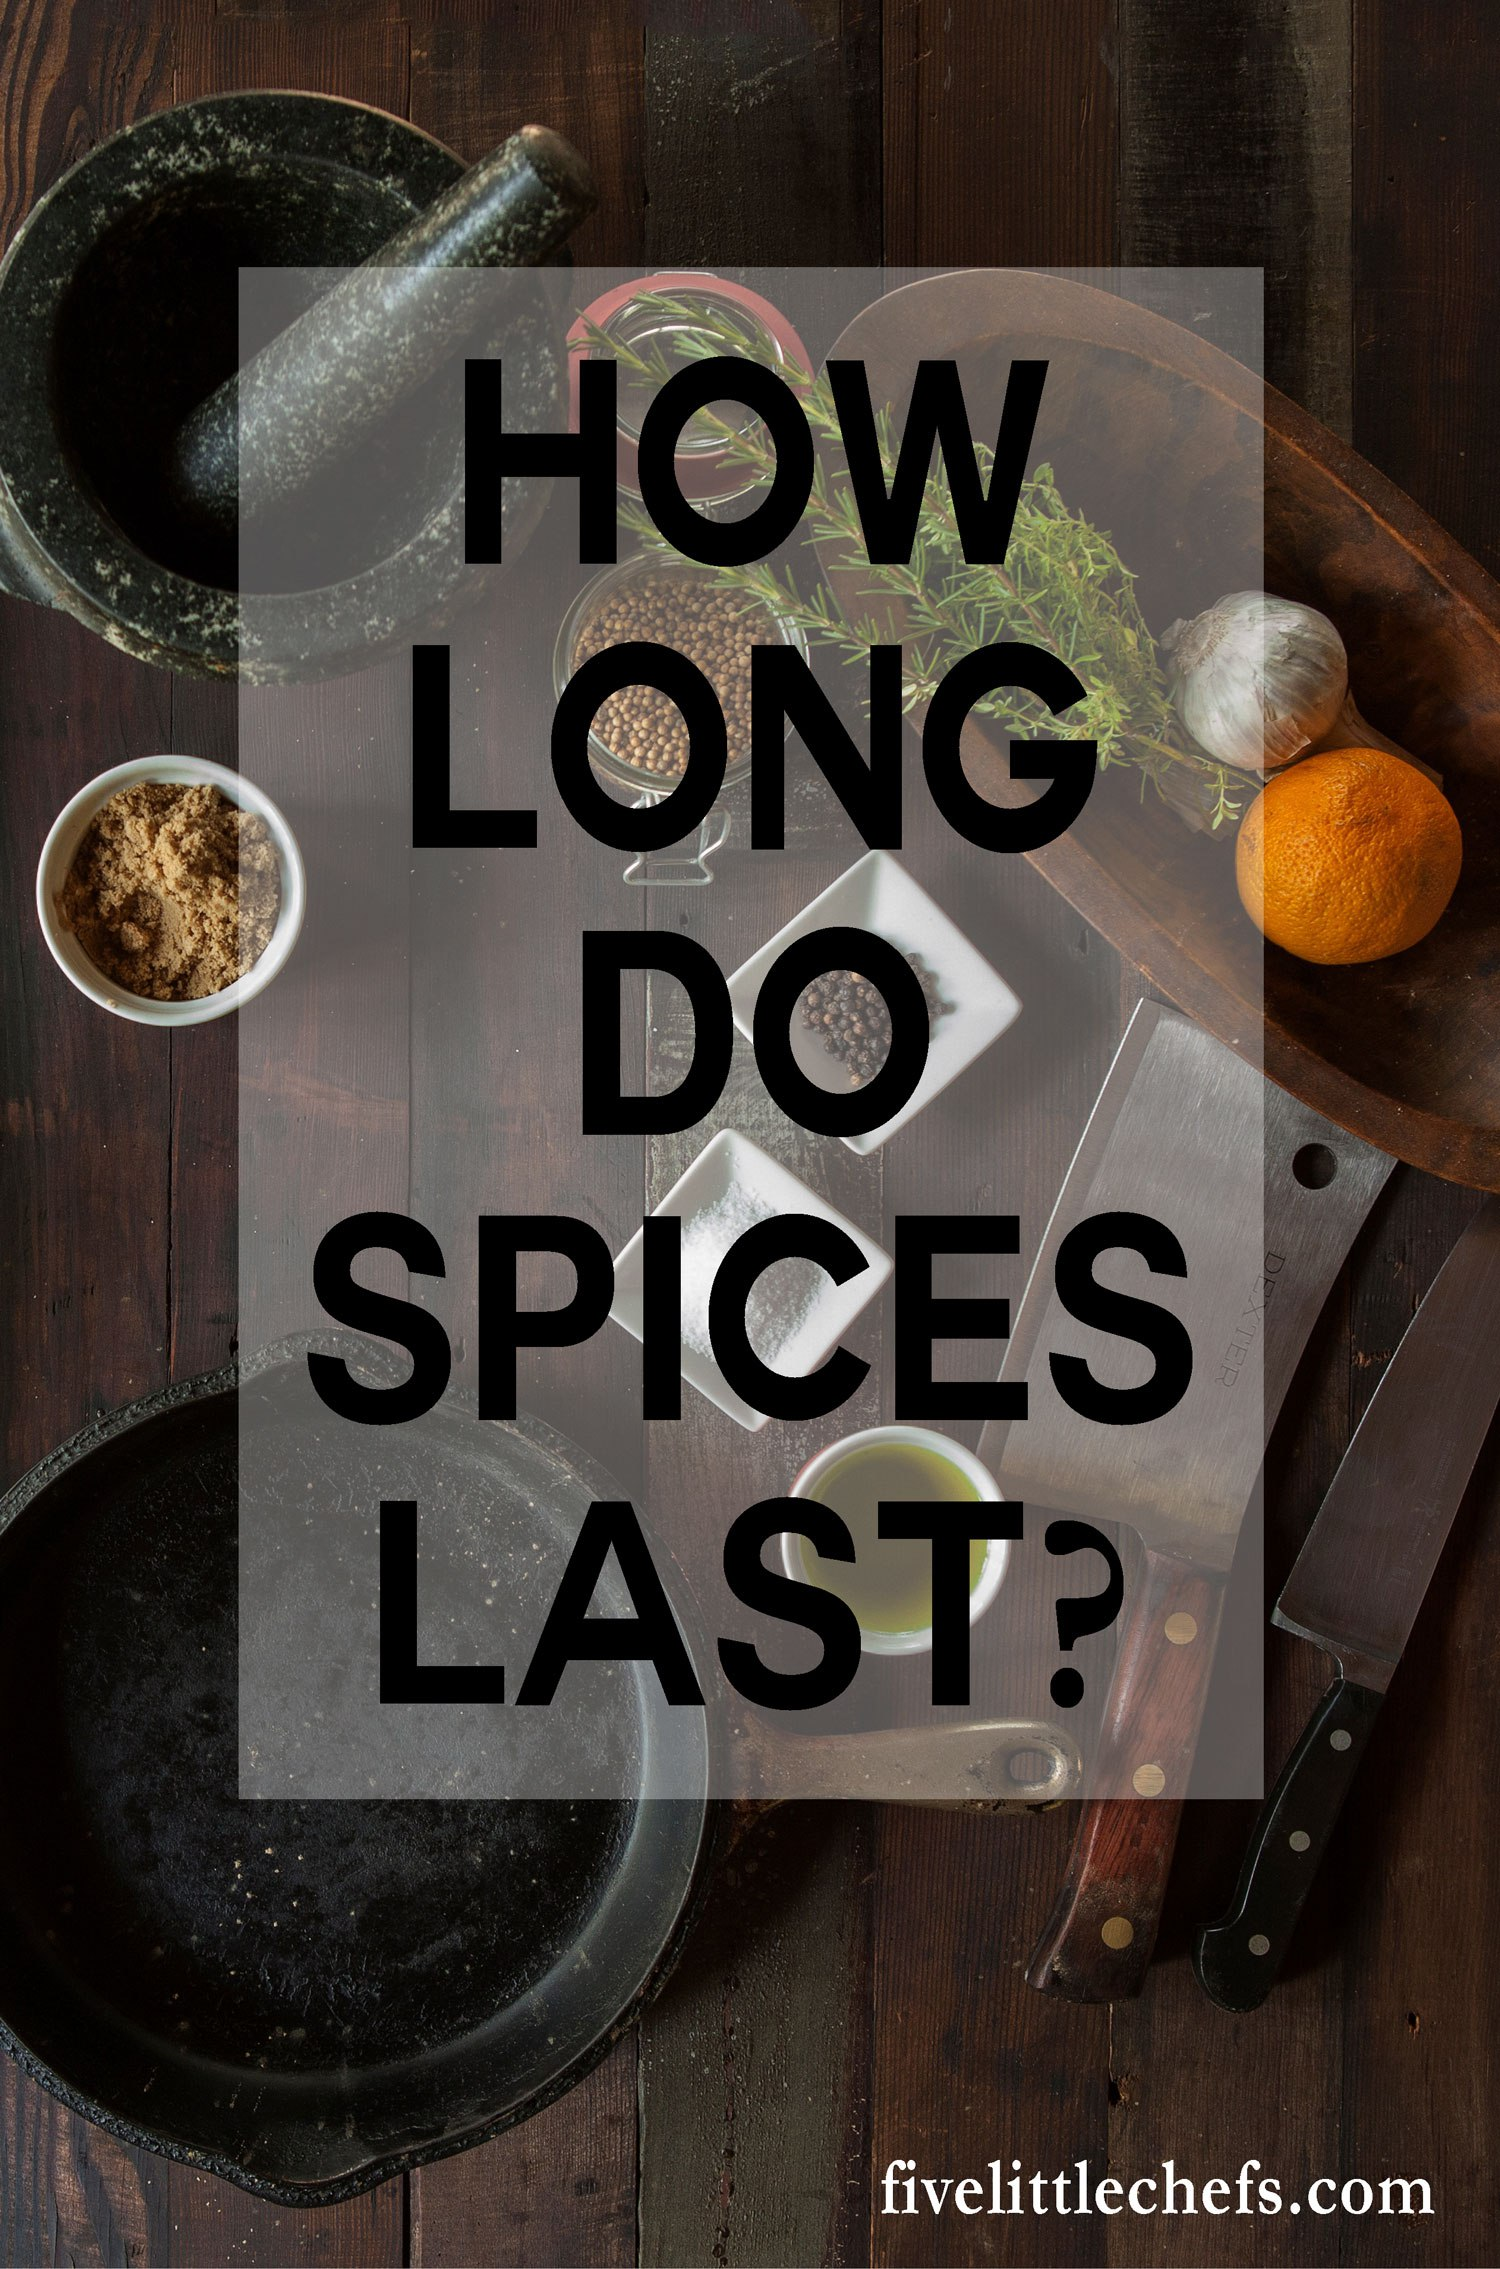 How long spices last is determined by many factors. A quick tip on what to do if you do not want to replace your spices is also included.